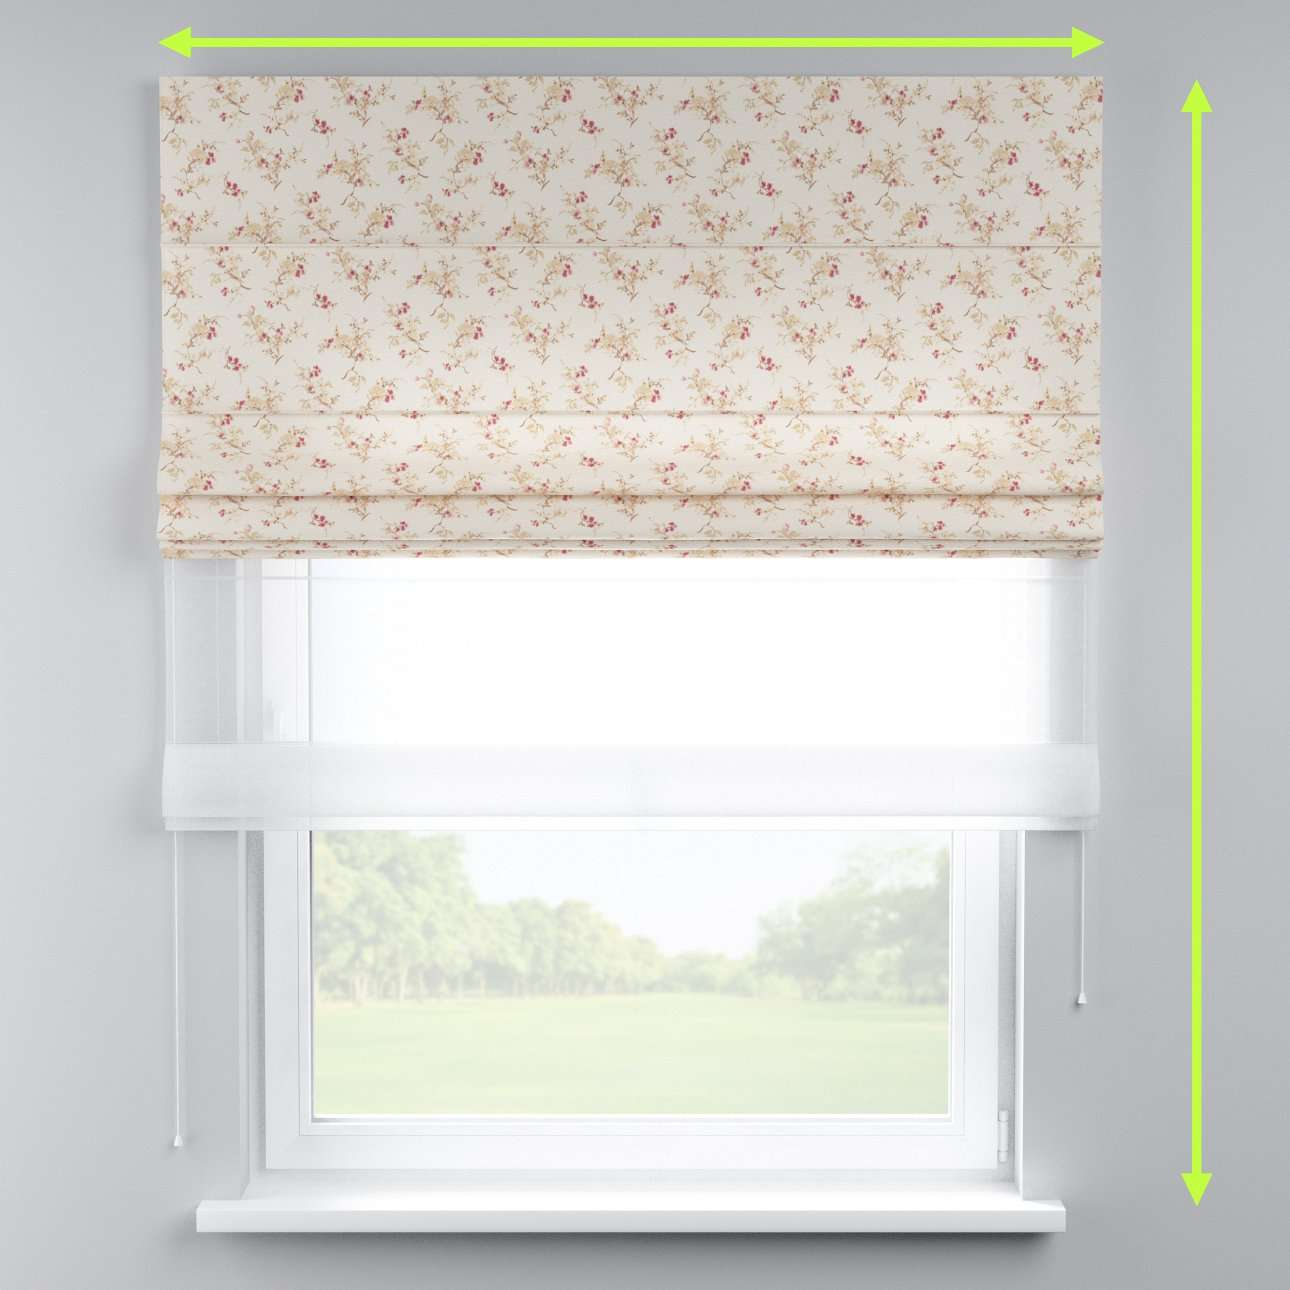 Voile and fabric roman blind (DUO II) in collection Mirella, fabric: 141-11